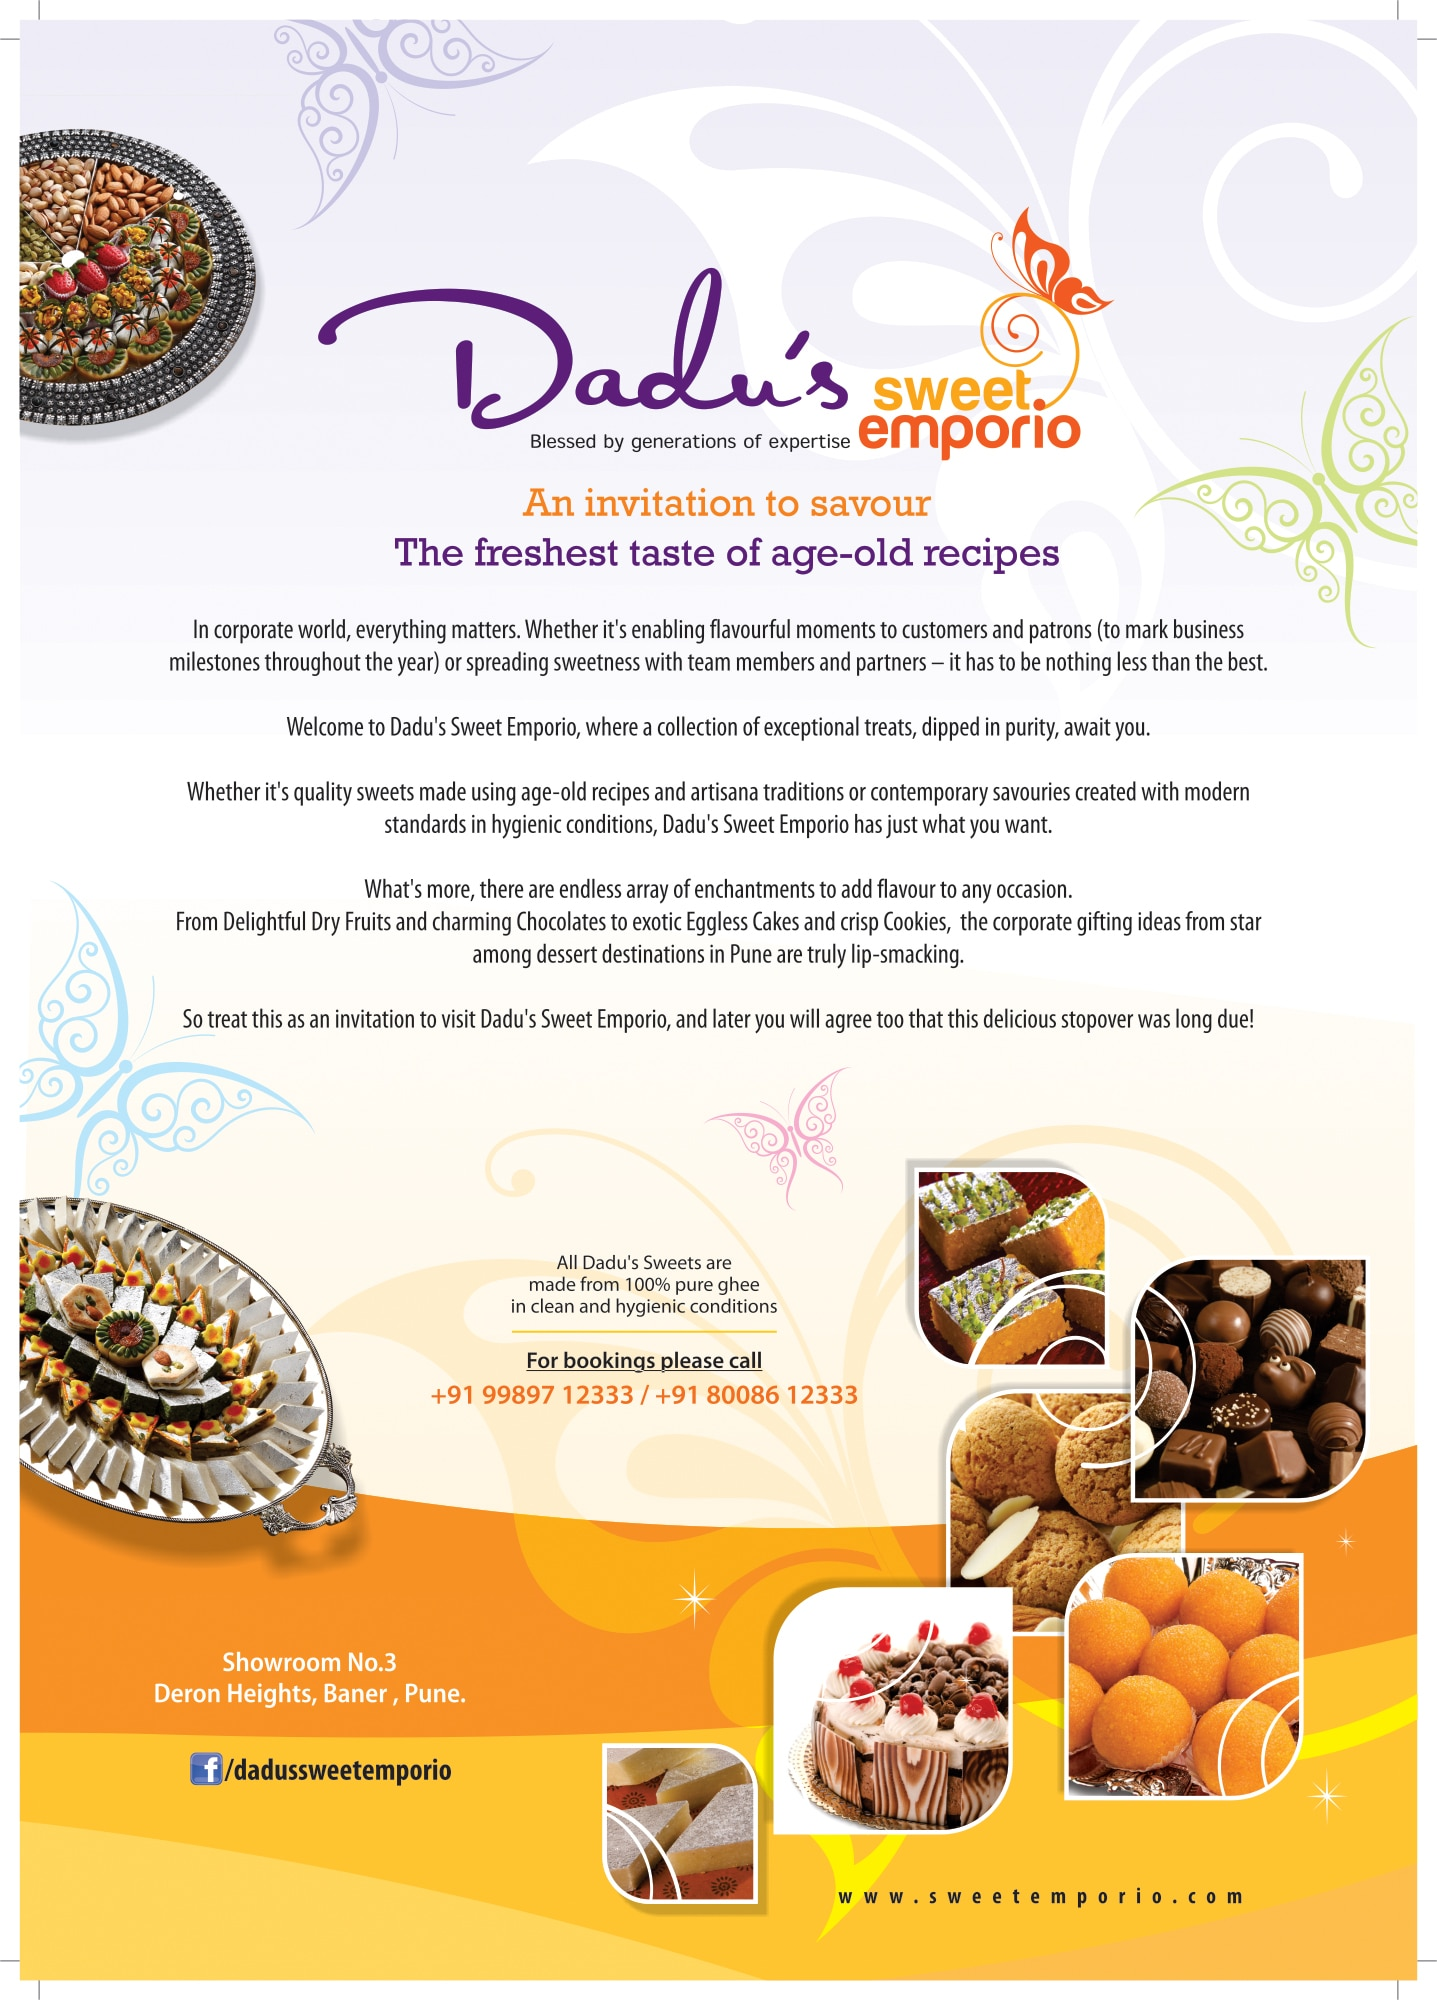 An invitation to savor The Freshest Taste Of Age-Old Recipes  In Corporate World, everything matters.Whether its enabling flavorful moments to Customers and Patrons (to mark Business Milestones throughout the year) or spreading sweetness with Team Members and Partners – It has to be nothing less than the Best.  Welcome to Dadu's Sweet Emporio, where a Collection of Exception Treats, dipped in Purity, awaits you.  Whether its Quality Traditional Sweets made using Age Old Recipes and Artisana Traditions or Contemporary Savories created with Modern Standards in Hygenic Conditions as laid by FSSAI, Dadu's Sweet Emporio has just what you want.  Whats more, there are endless array of enhancements to add flavor to any Occasion. From Delightful Dry Fruits and charming Chocolates to Exotic Eggless Cakes and Crisp Cookies, the Corporate Gifting Ideas from Star among Desert Destinations in Pune are truly lip-smacking.  So treat this as an invitation to visit Dadu's Sweet Emporio, and later you will agree too that this Delicious Stopover was Long Due!